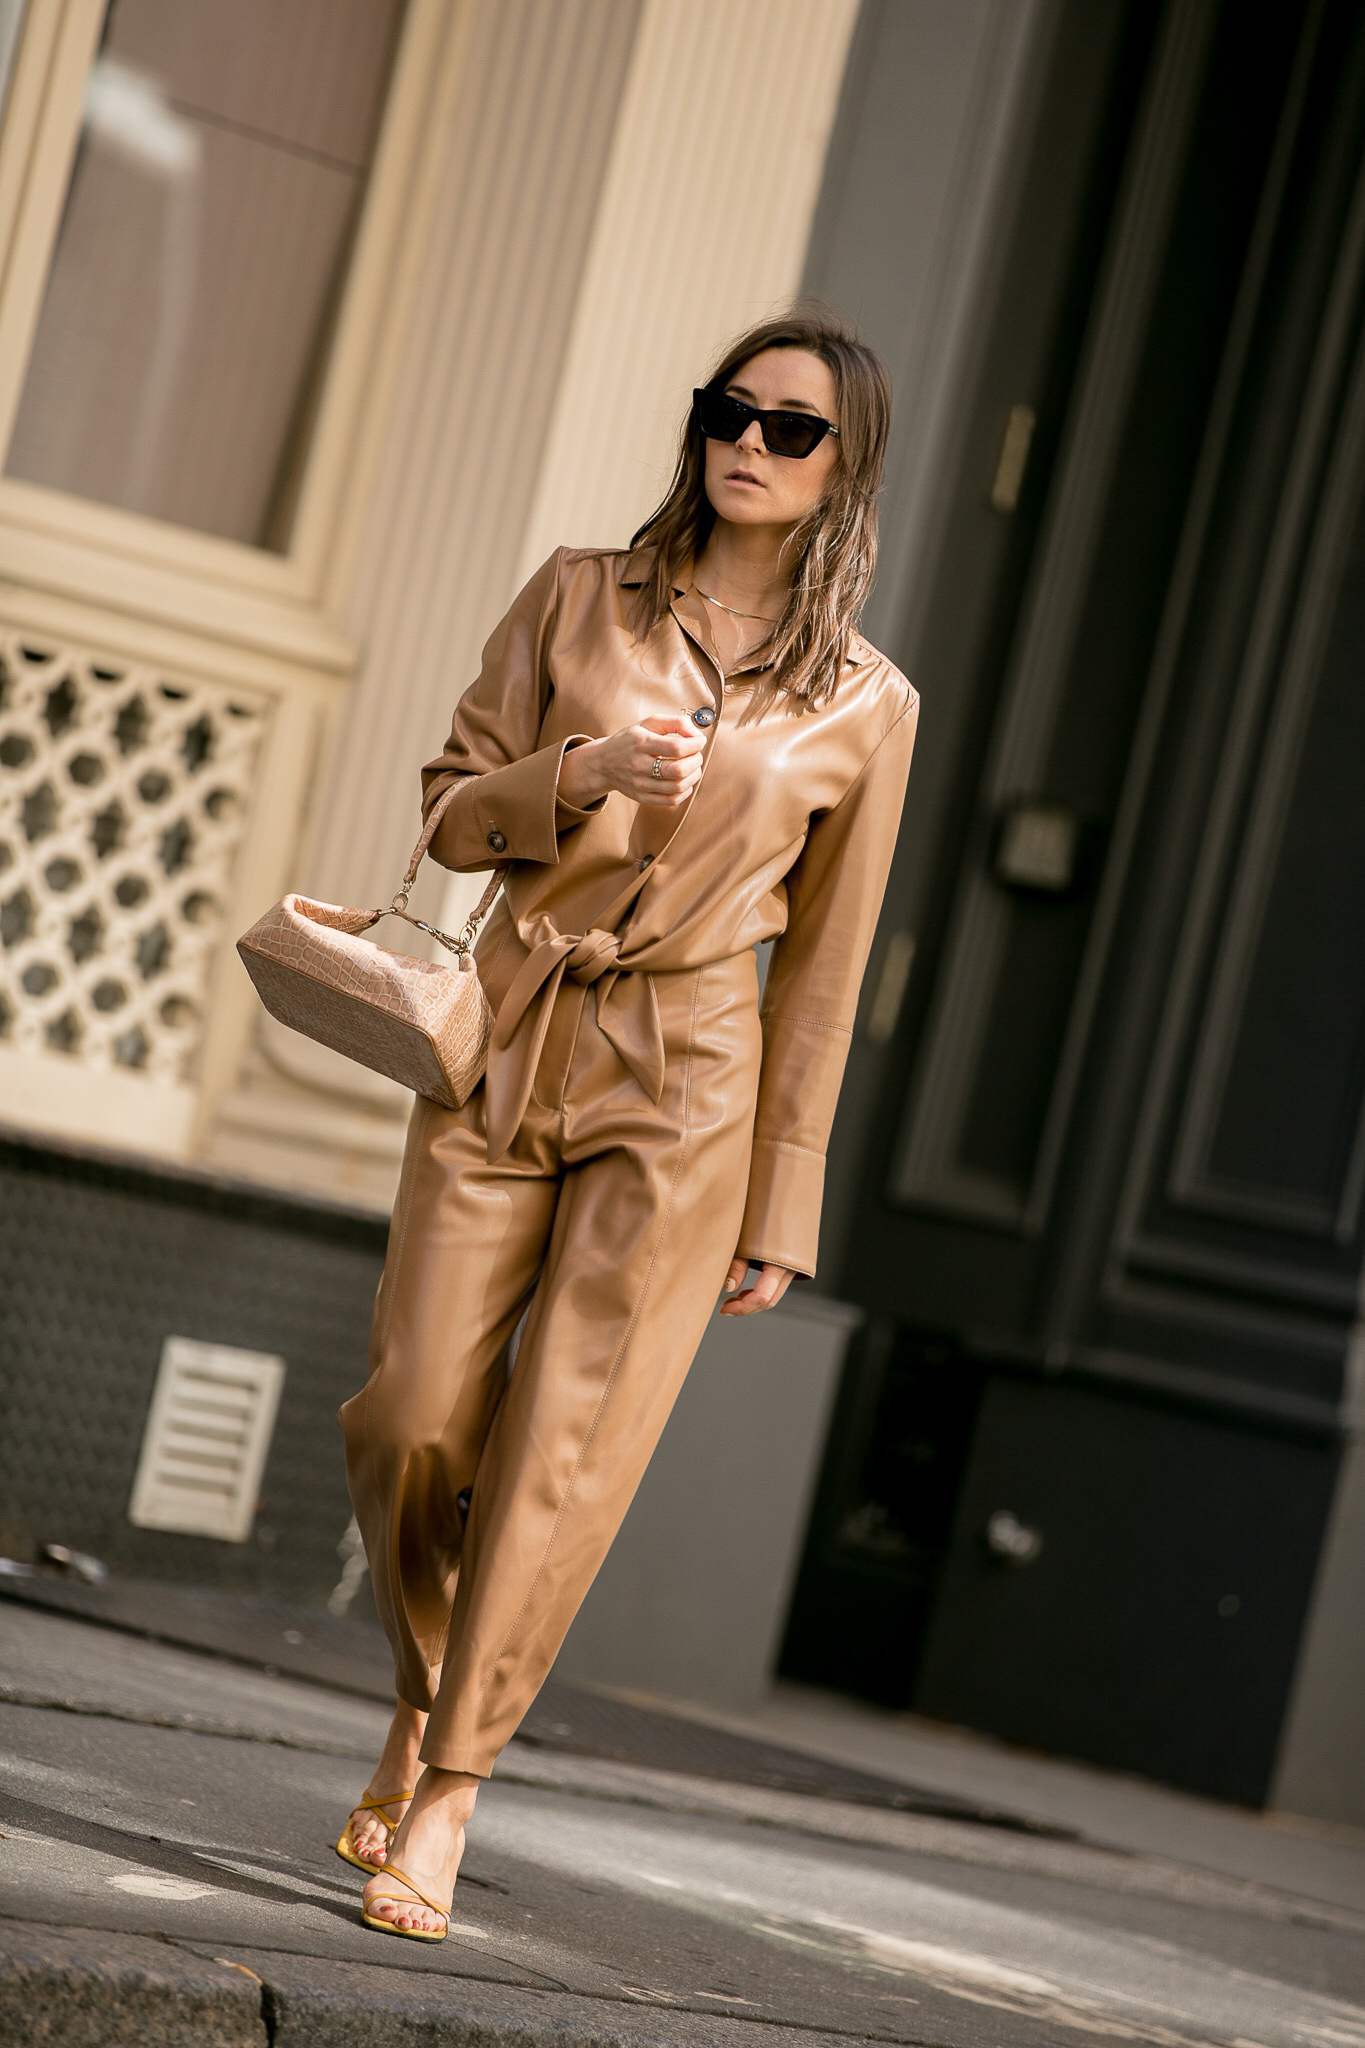 My favorite looks from NYFW to transition from summer to fall. Selection of some of my favorite items: bermuda shorts, leather trench coat, jumpsuit, hat, pink blazer via Farfetch, Italist, Milk Boutique and Net A Porter.